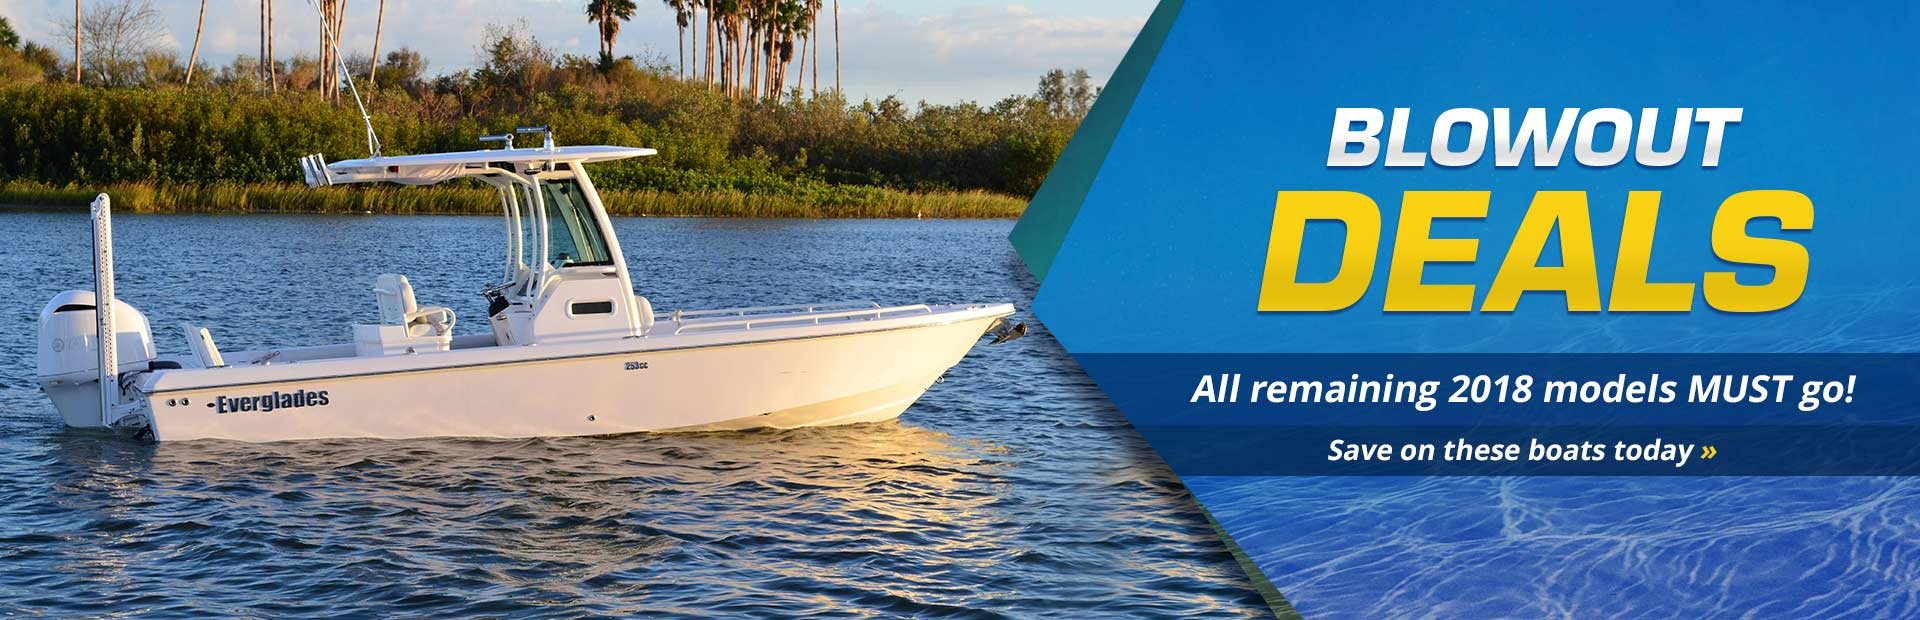 Blowout Deals on All Remaining 2018 Models: Save on these boats today!